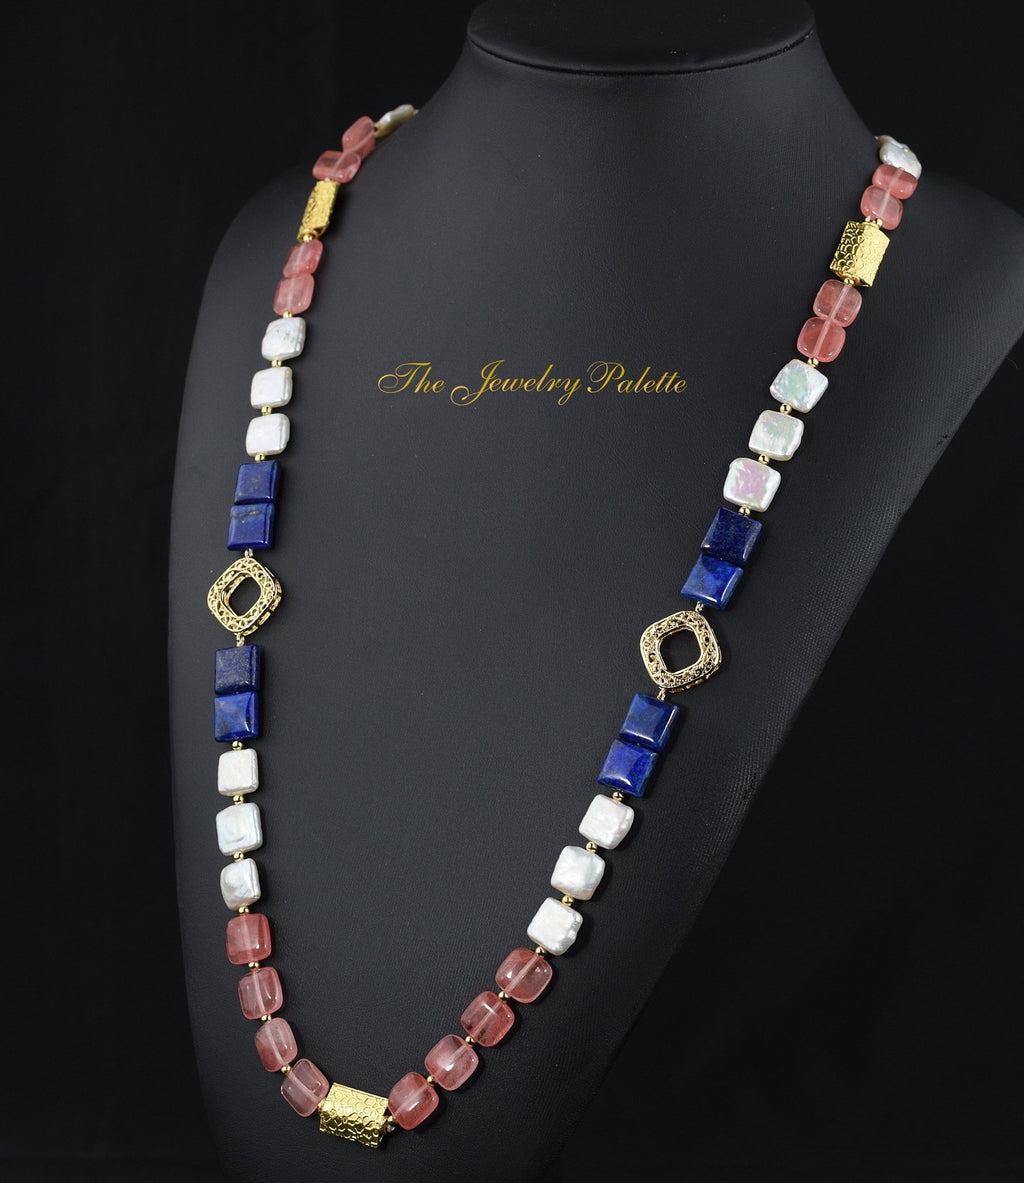 Zara white pearl, lapis lazuli and pink quartz necklace - The Jewelry Palette